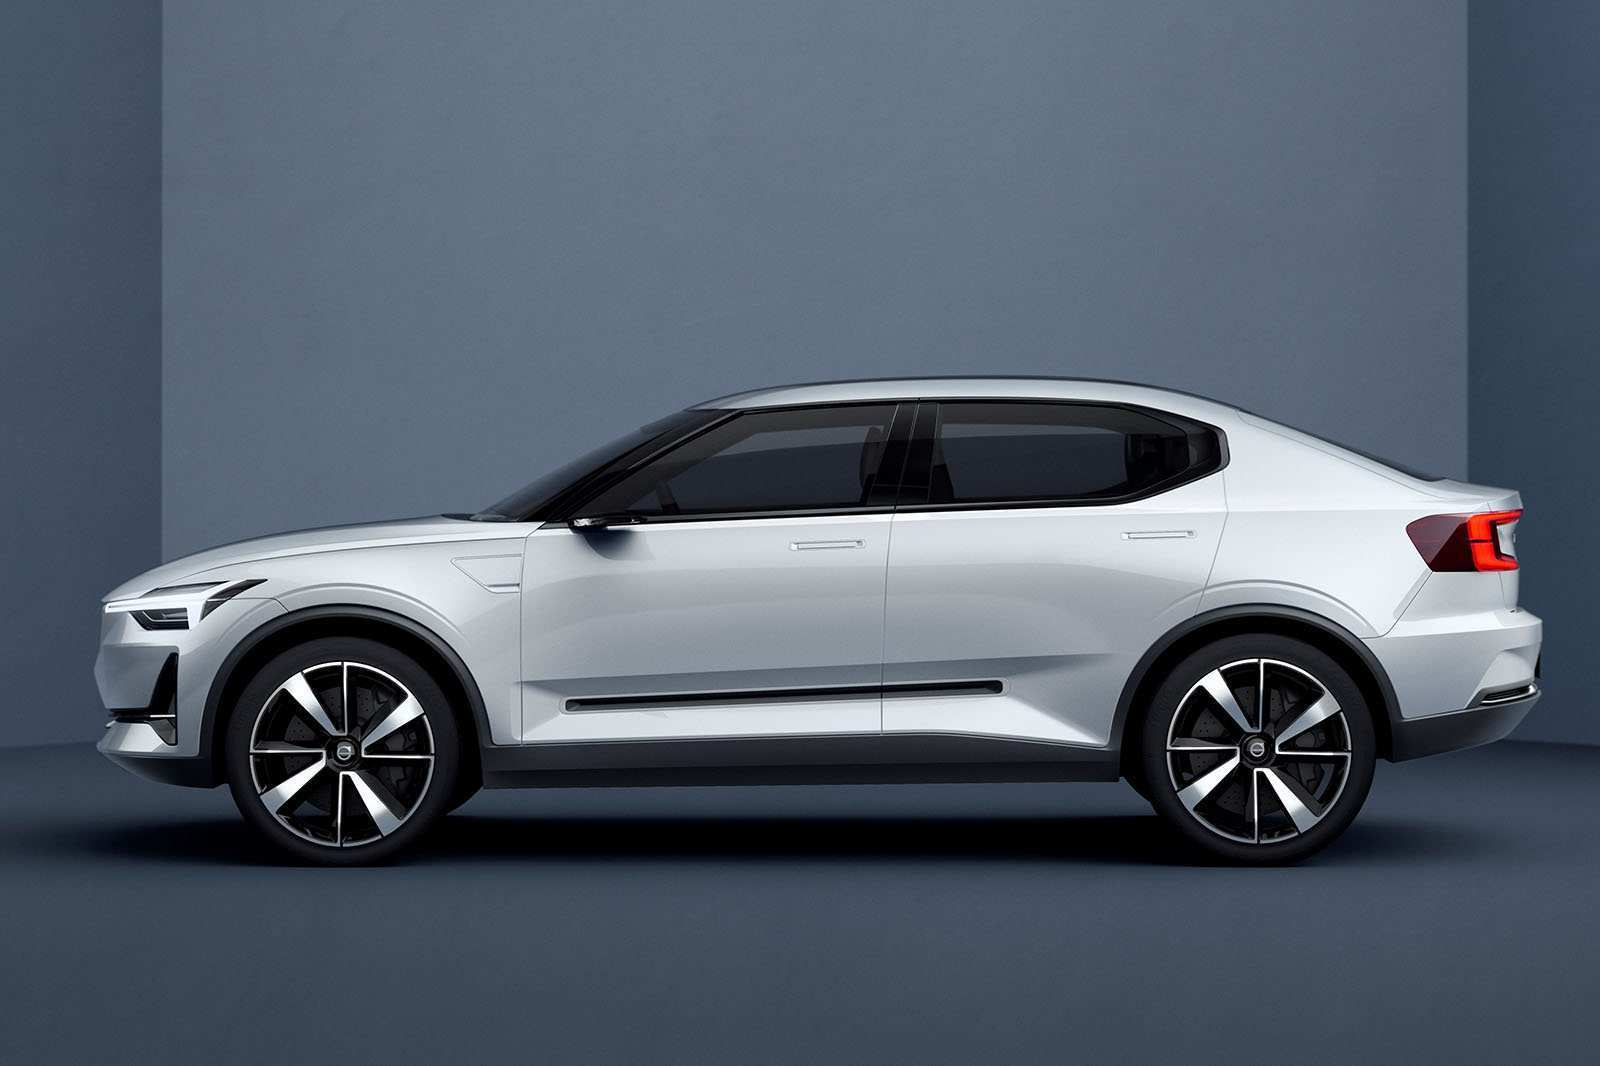 20 Concept of Best Volvo Cars 2019 Models Specs Configurations by Best Volvo Cars 2019 Models Specs